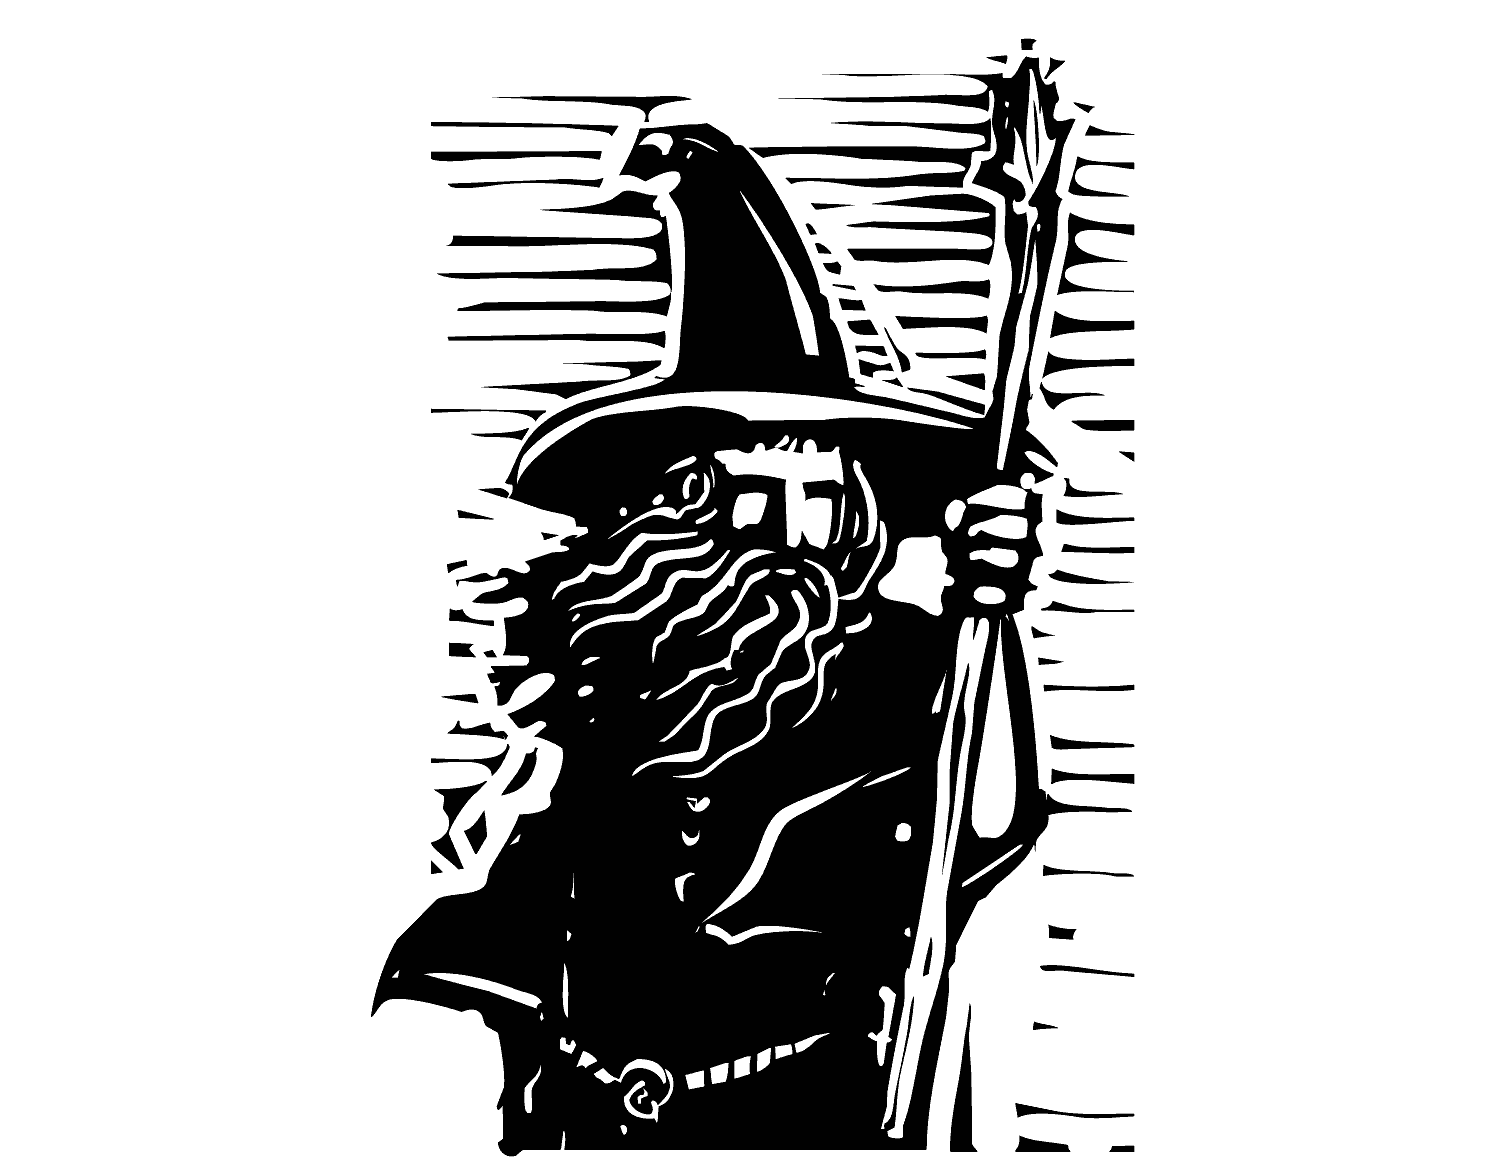 bigstock-Wizard-Bust-93478208-[Converted].png